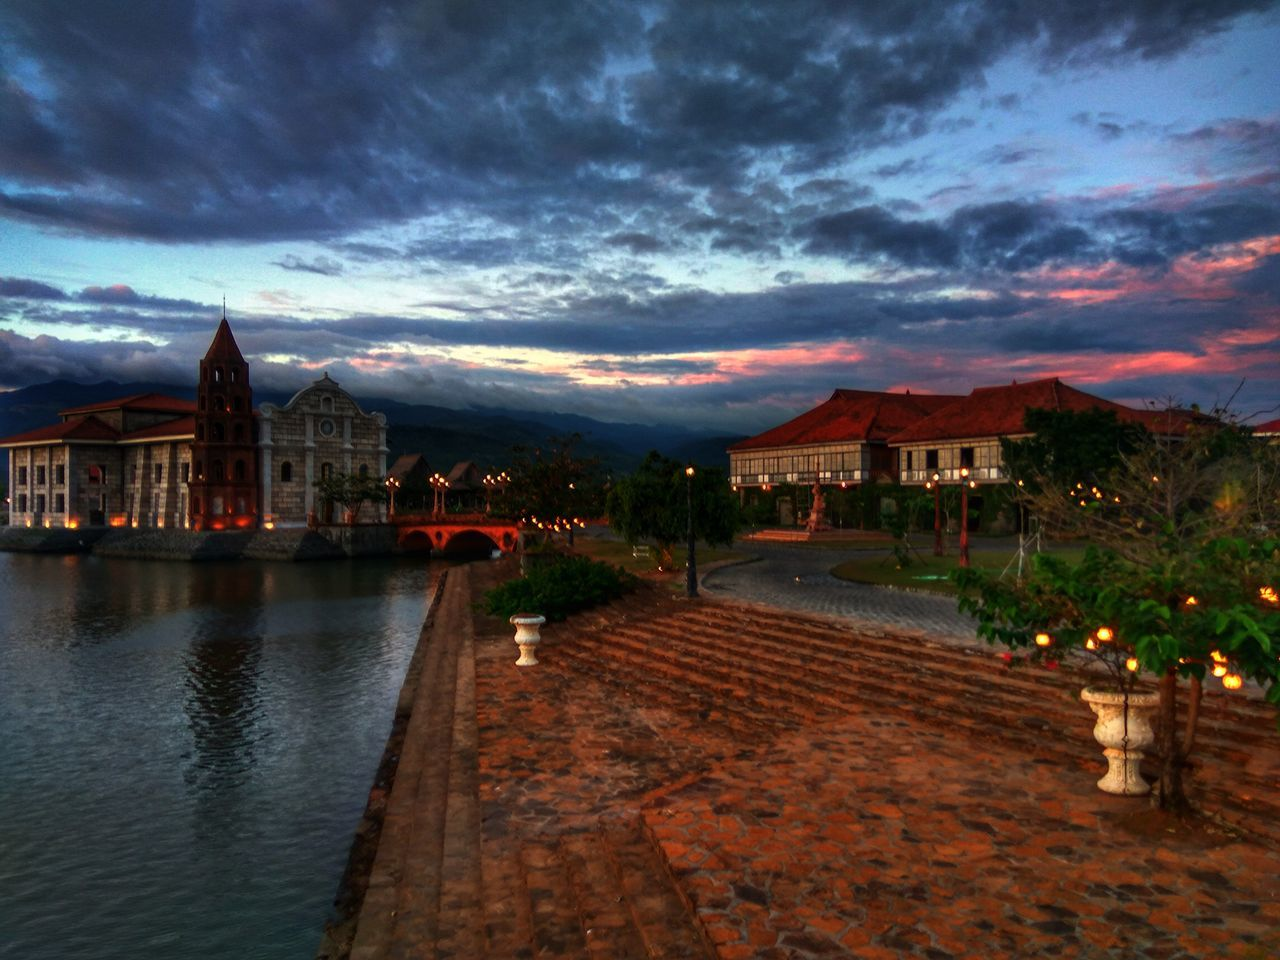 Architecture Building Exterior Dusk Travel Destinations Built Structure Sky Cloud - Sky Water Travel Reflection Bridge - Man Made Structure Illuminated City Sunset River No People Outdoors Cityscape Night History Lascasasfilipinasdeacuzar Bataan Philippines Tour Travelphotography